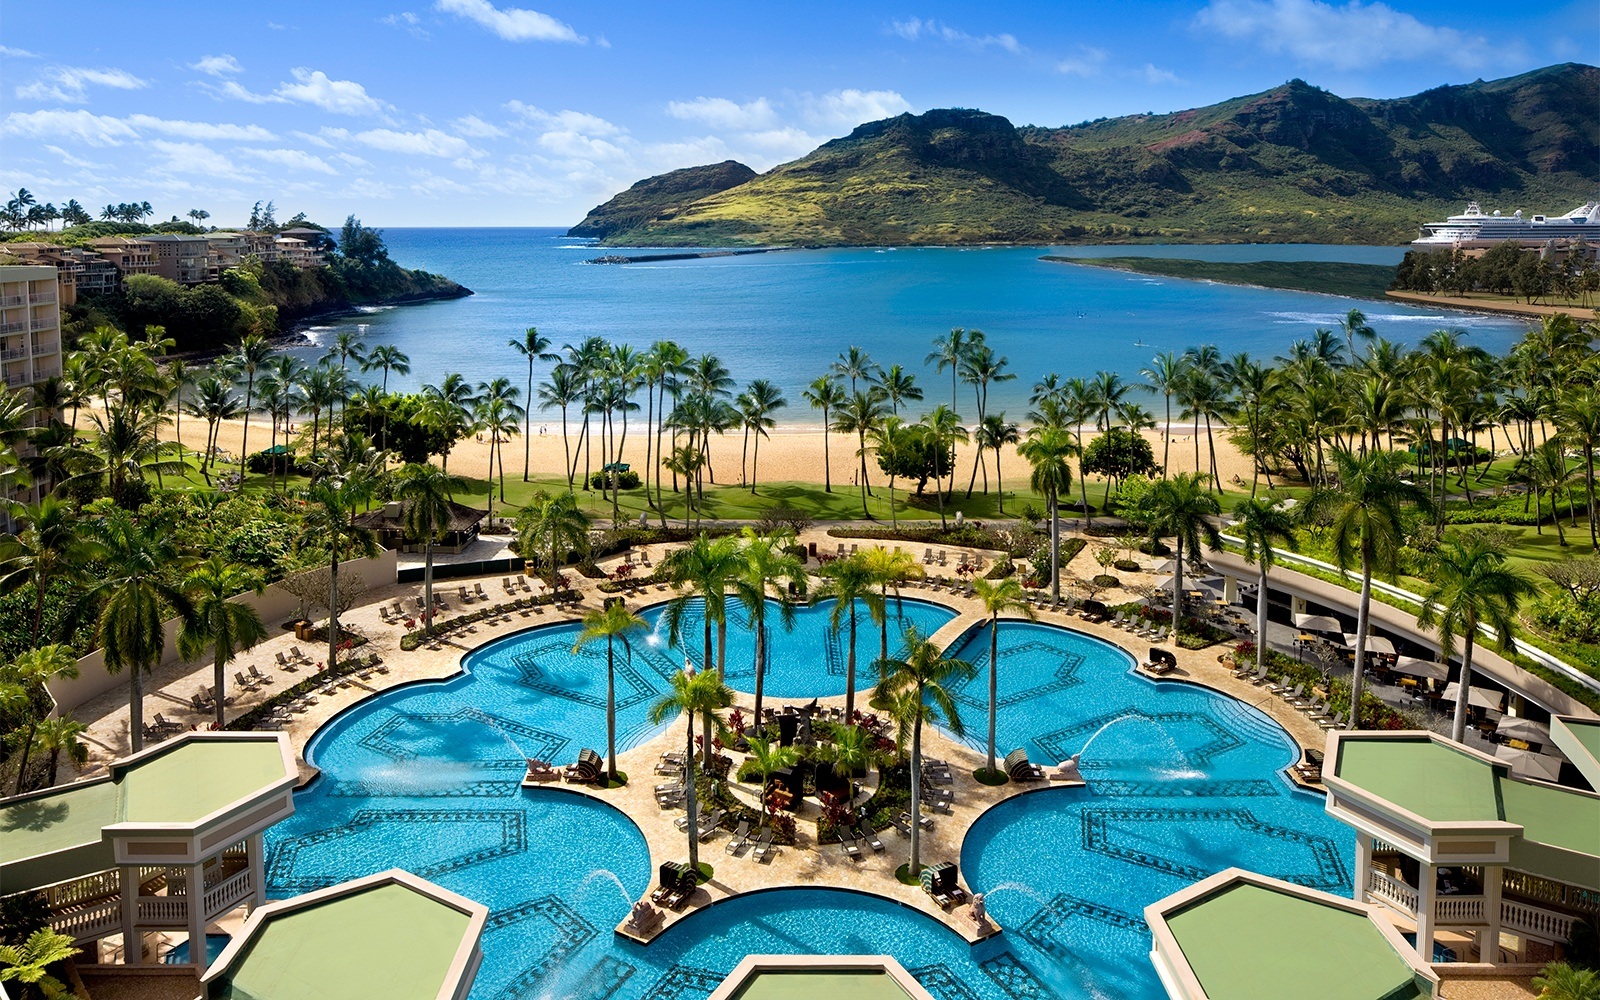 No. 9: Kauai Marriott Resort, Kaua'i, Hawaii